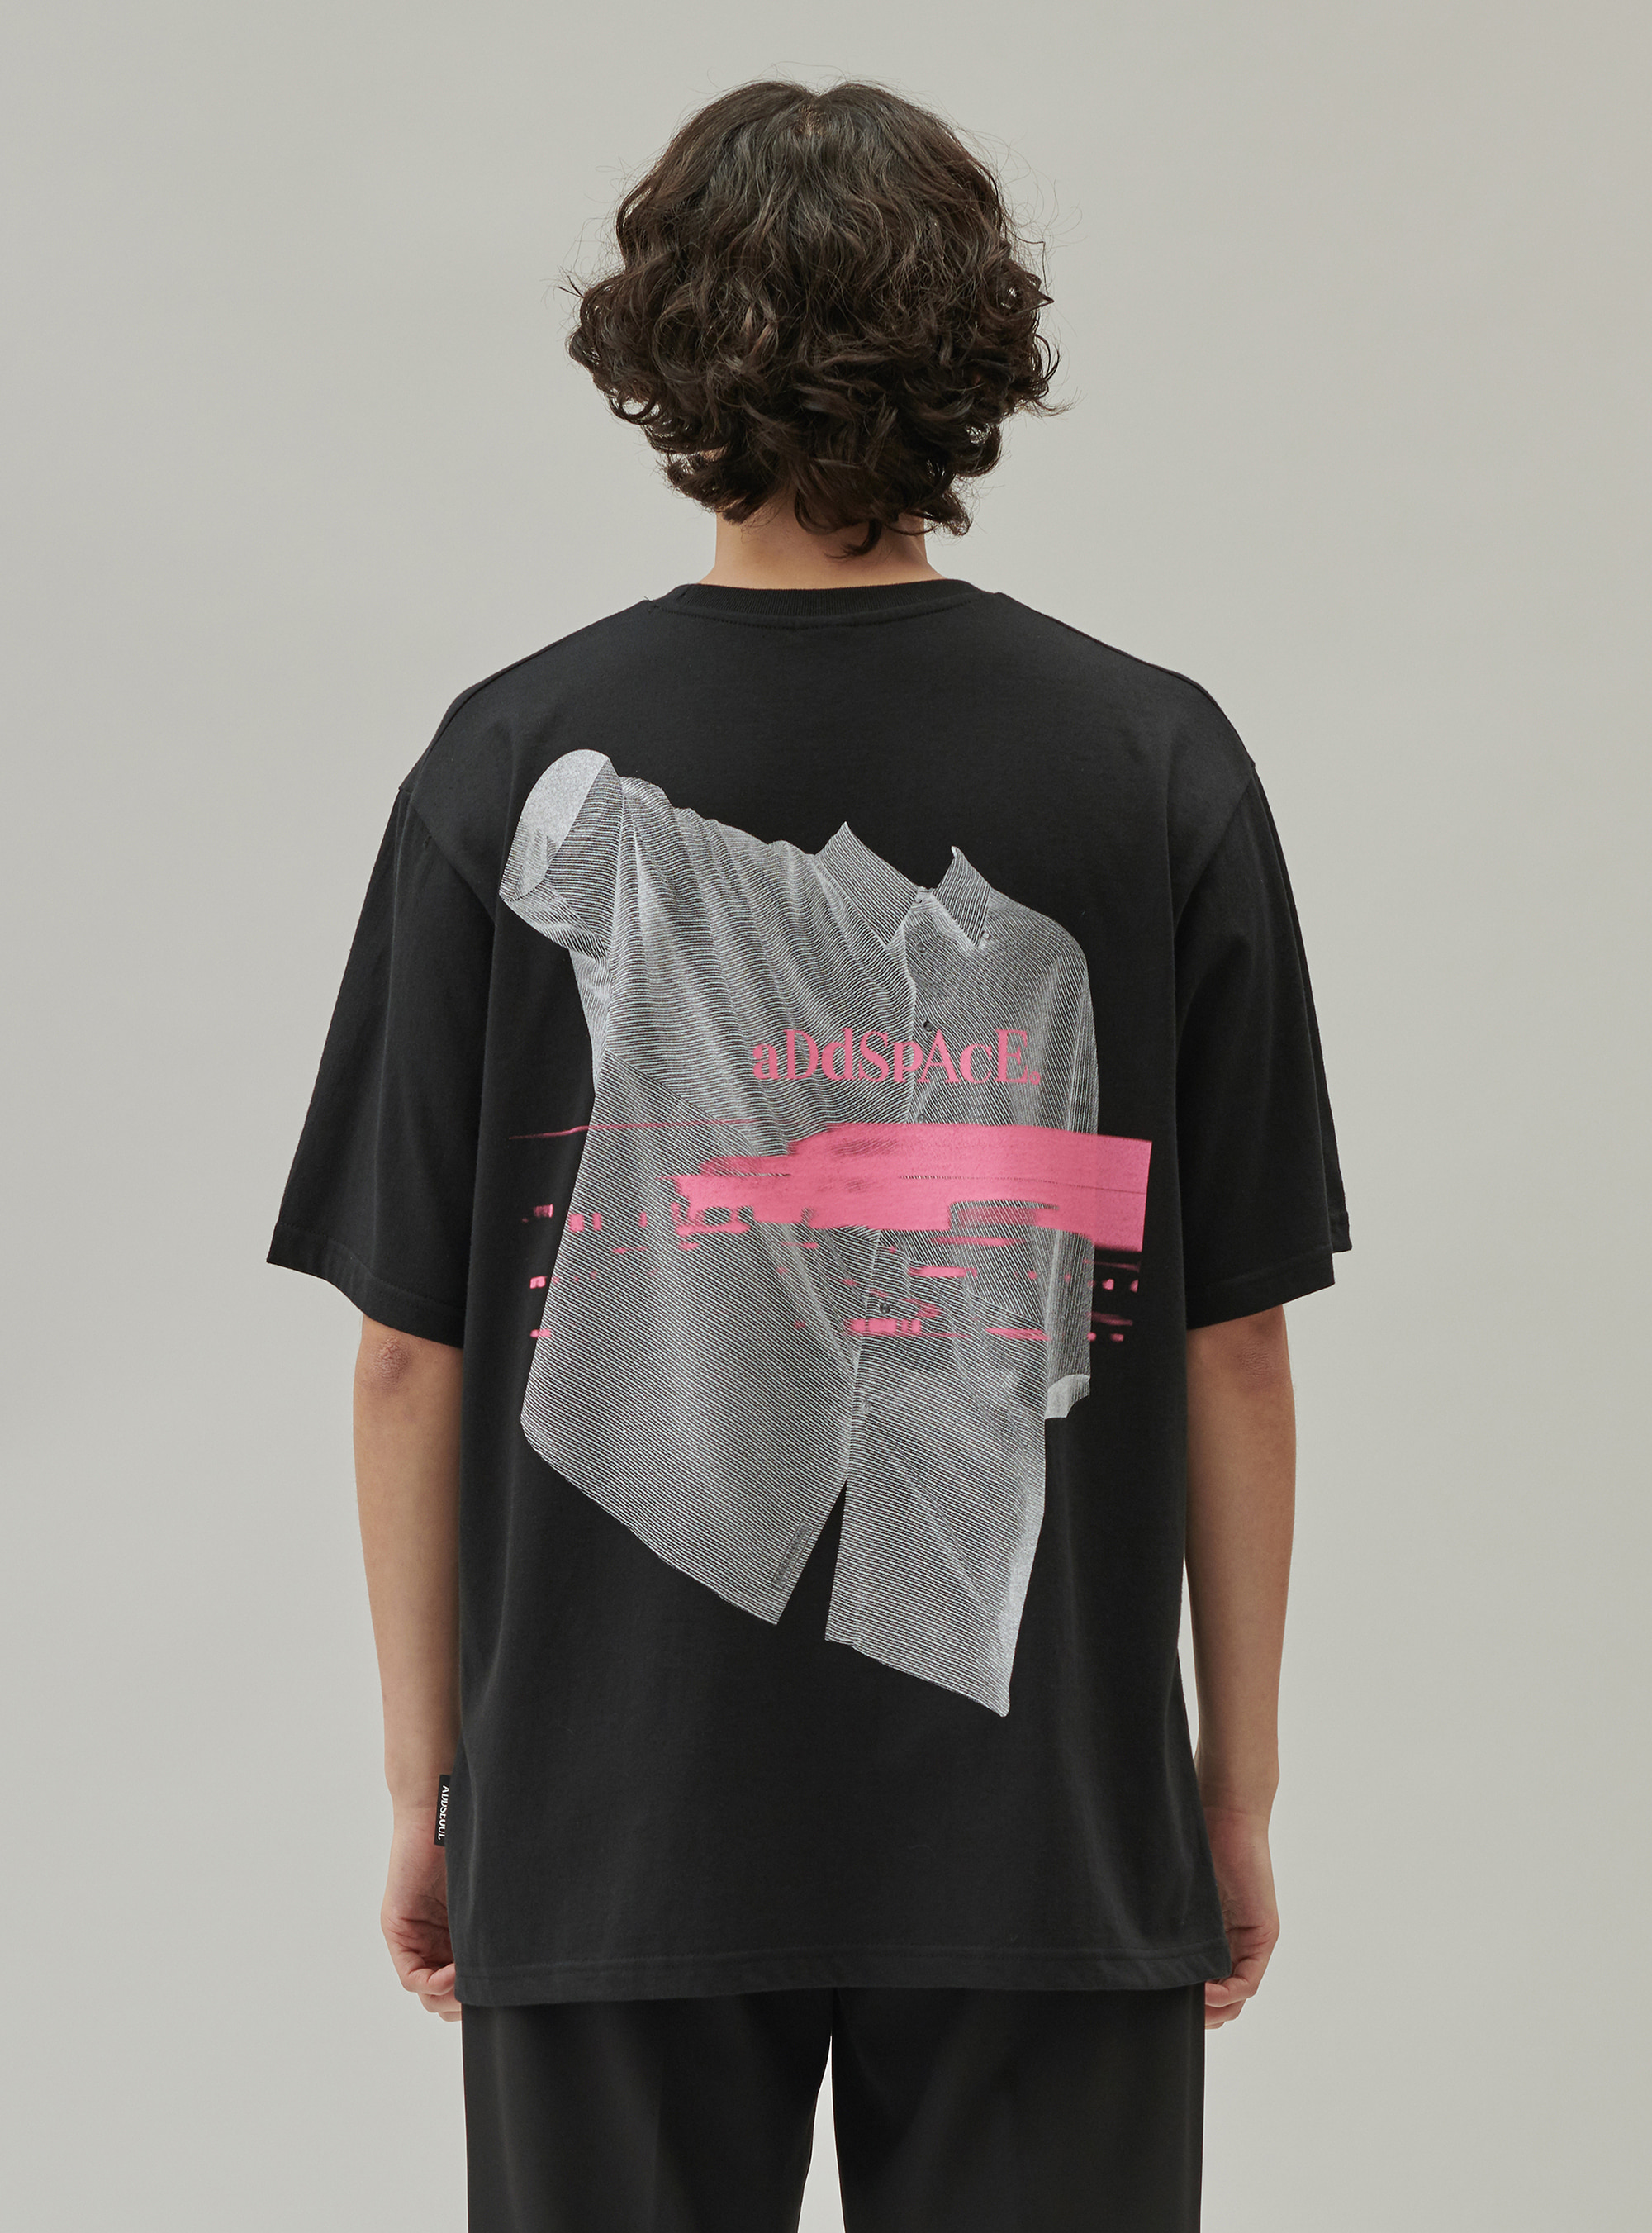 ADD SHIRT GRAPHIC A TEE BLACK